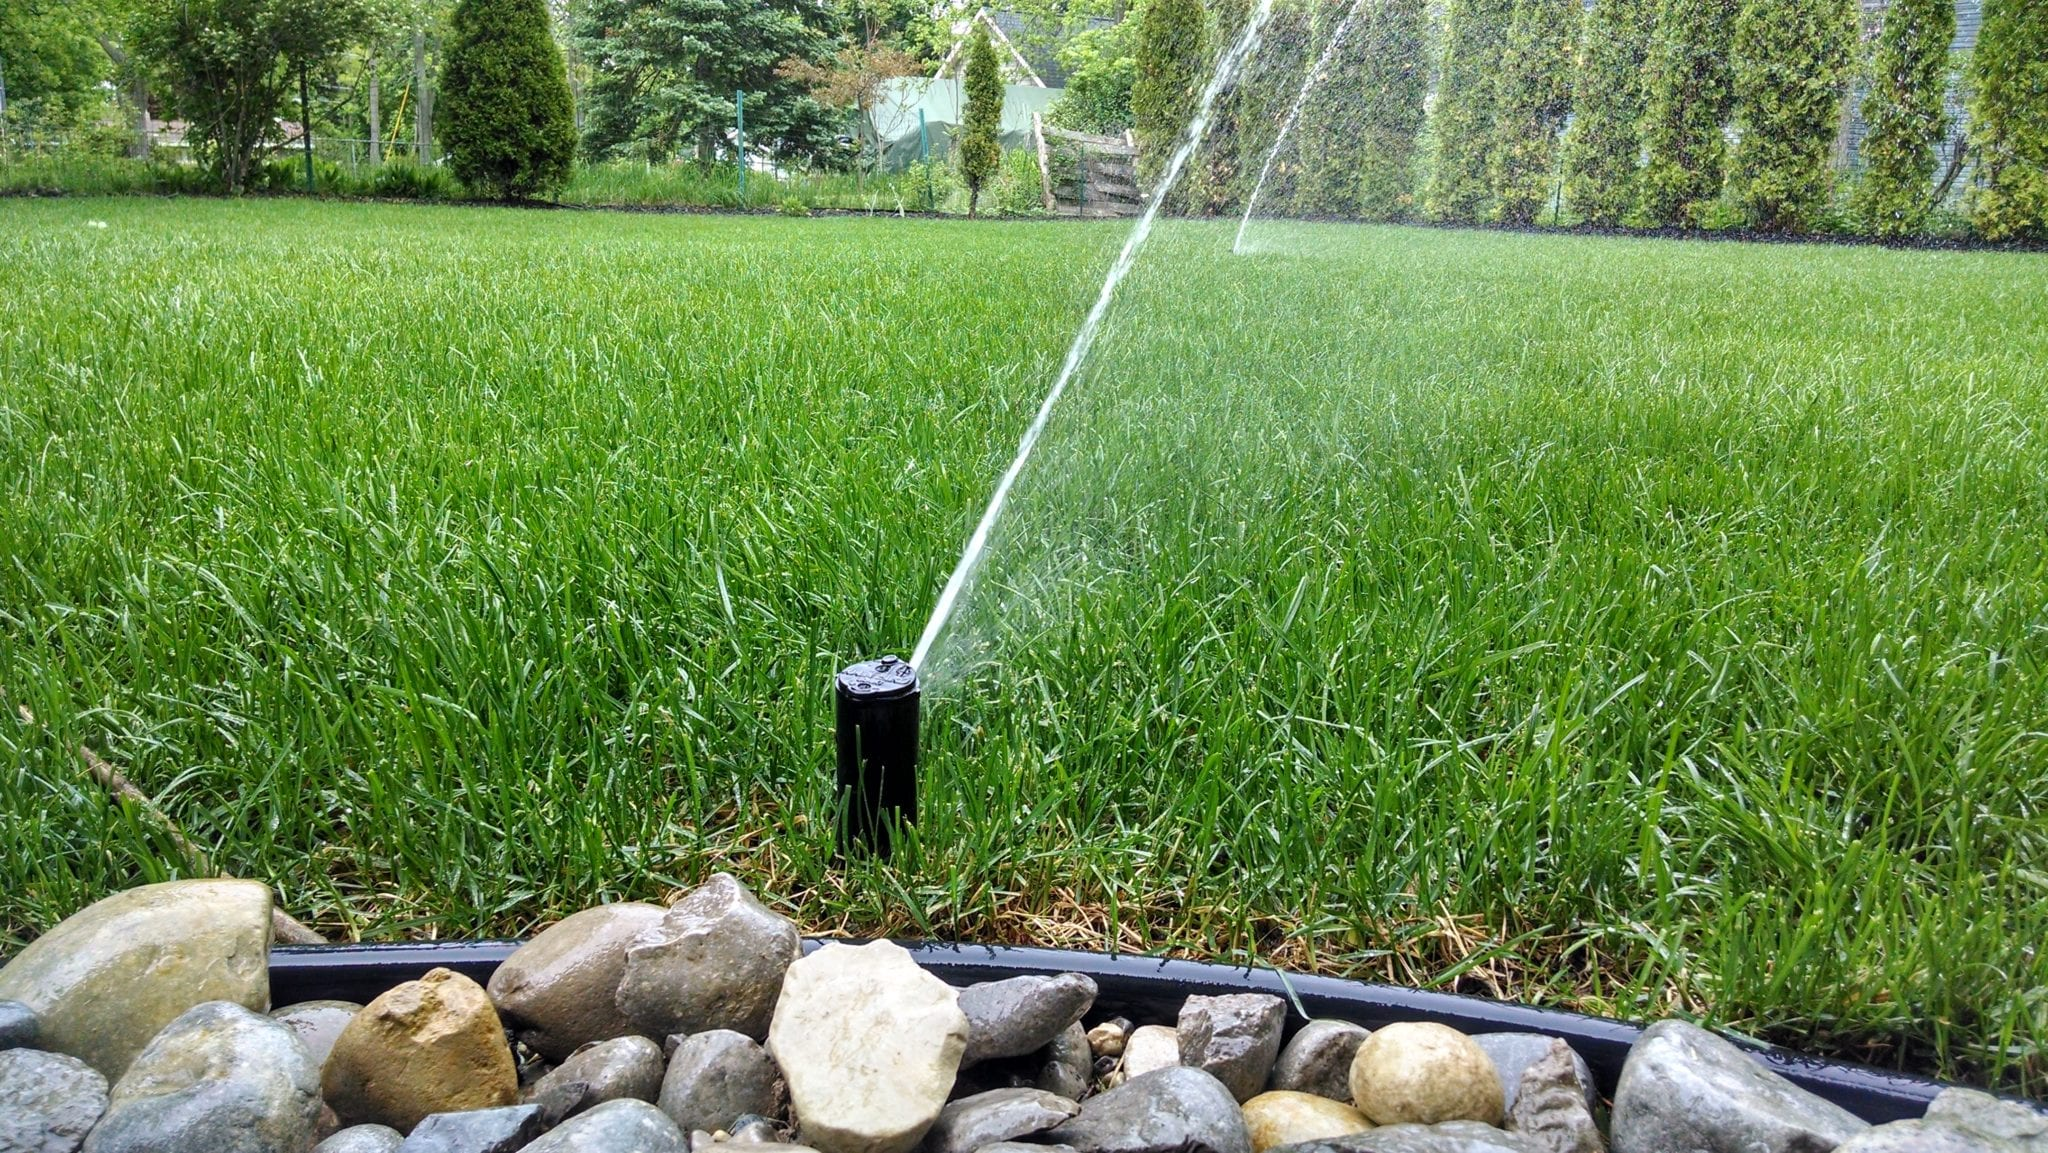 See Irrigation Systems To Keep Your Lawn Gorgeous All Year Long